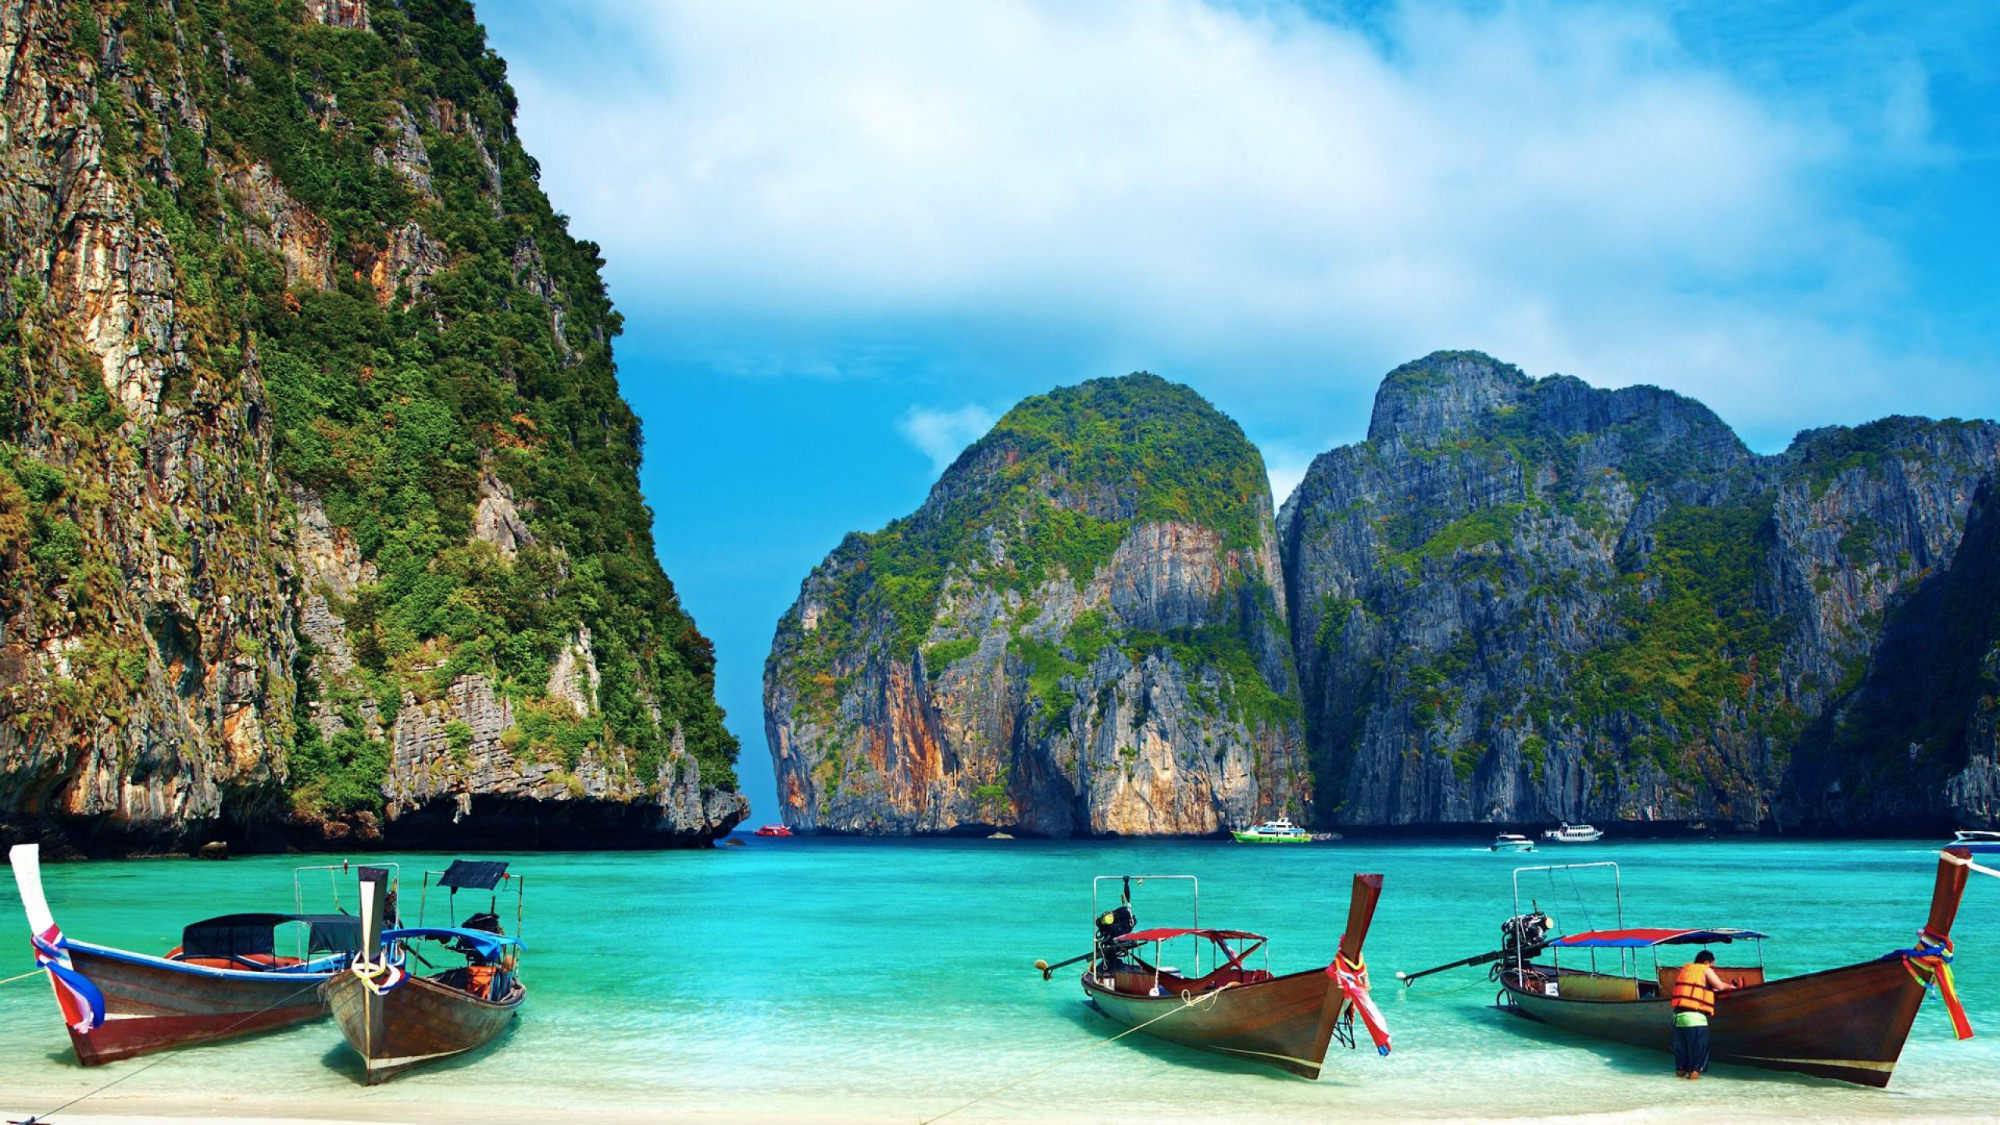 Finding 'Unusual' Travel Destinations in Thailand